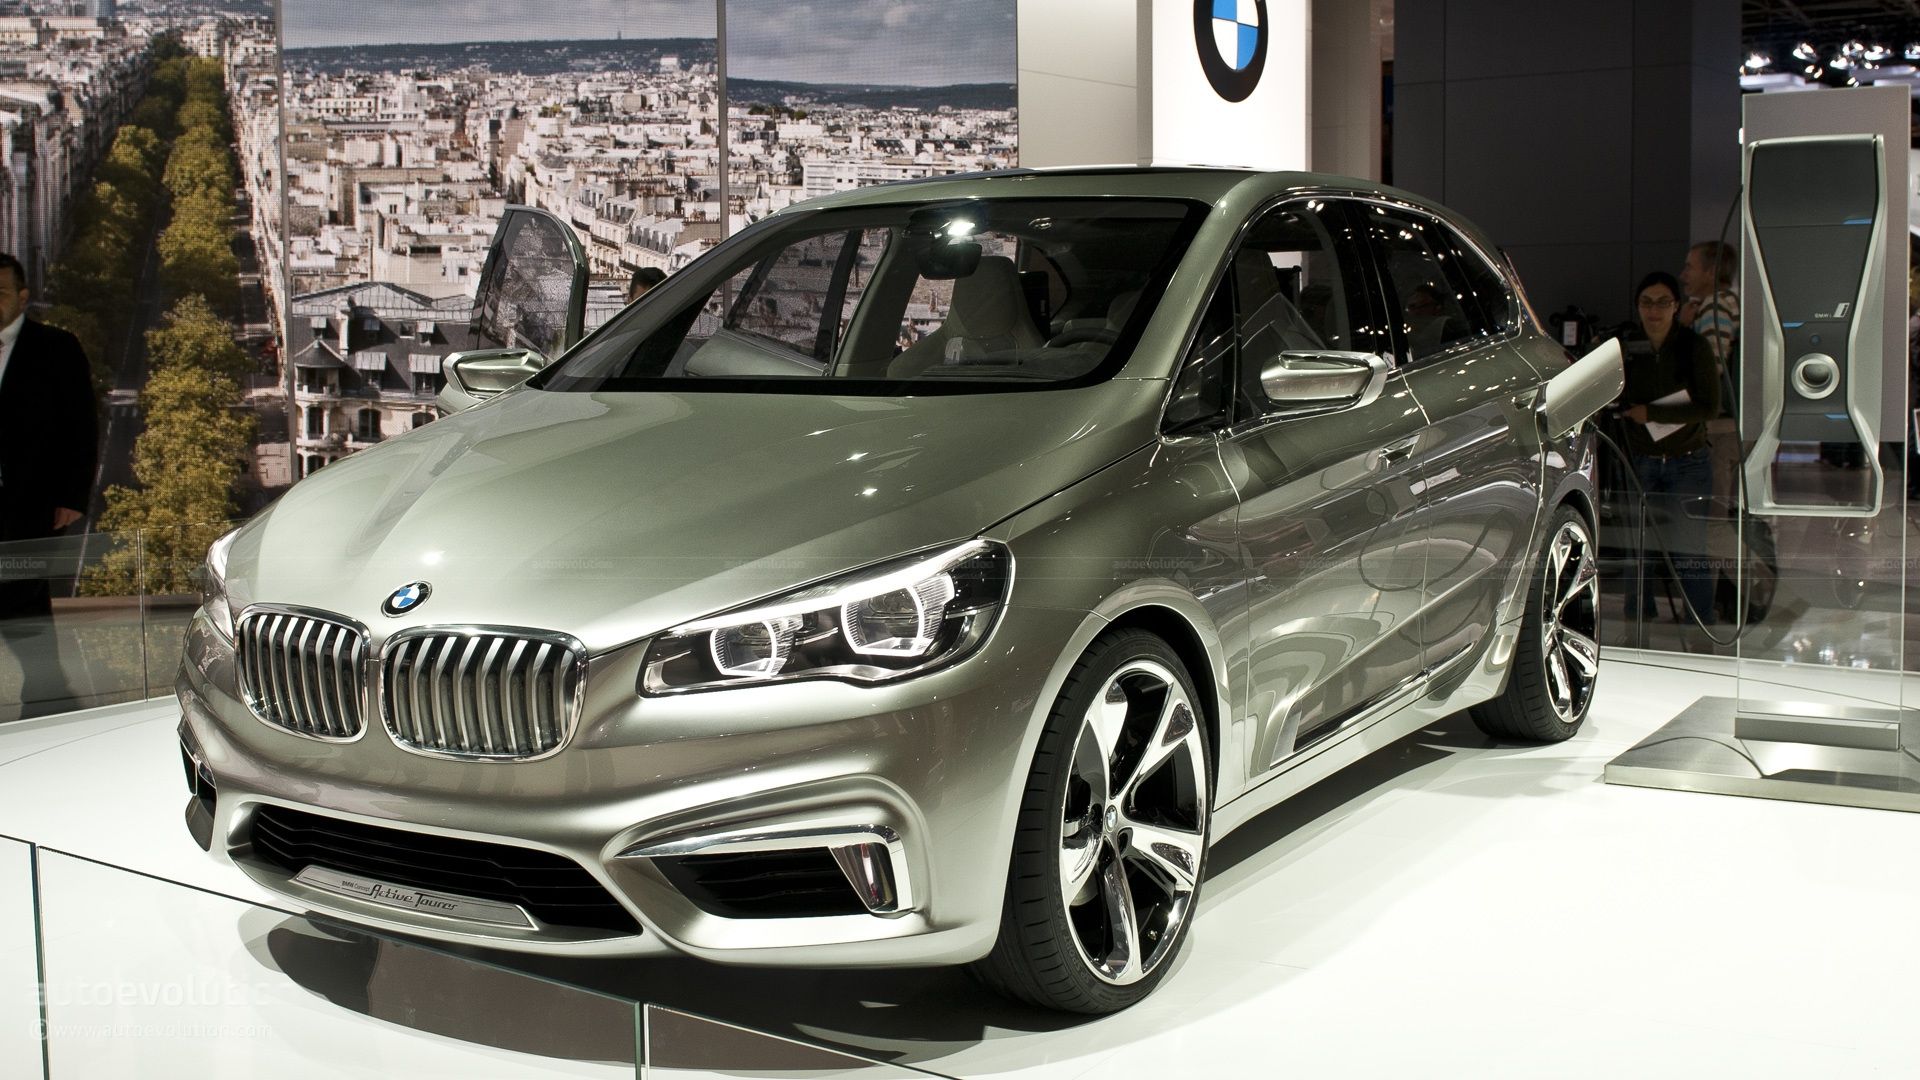 Front Wheel Drive Vehicle : Bmw new front wheel drive cars officially confirmed for